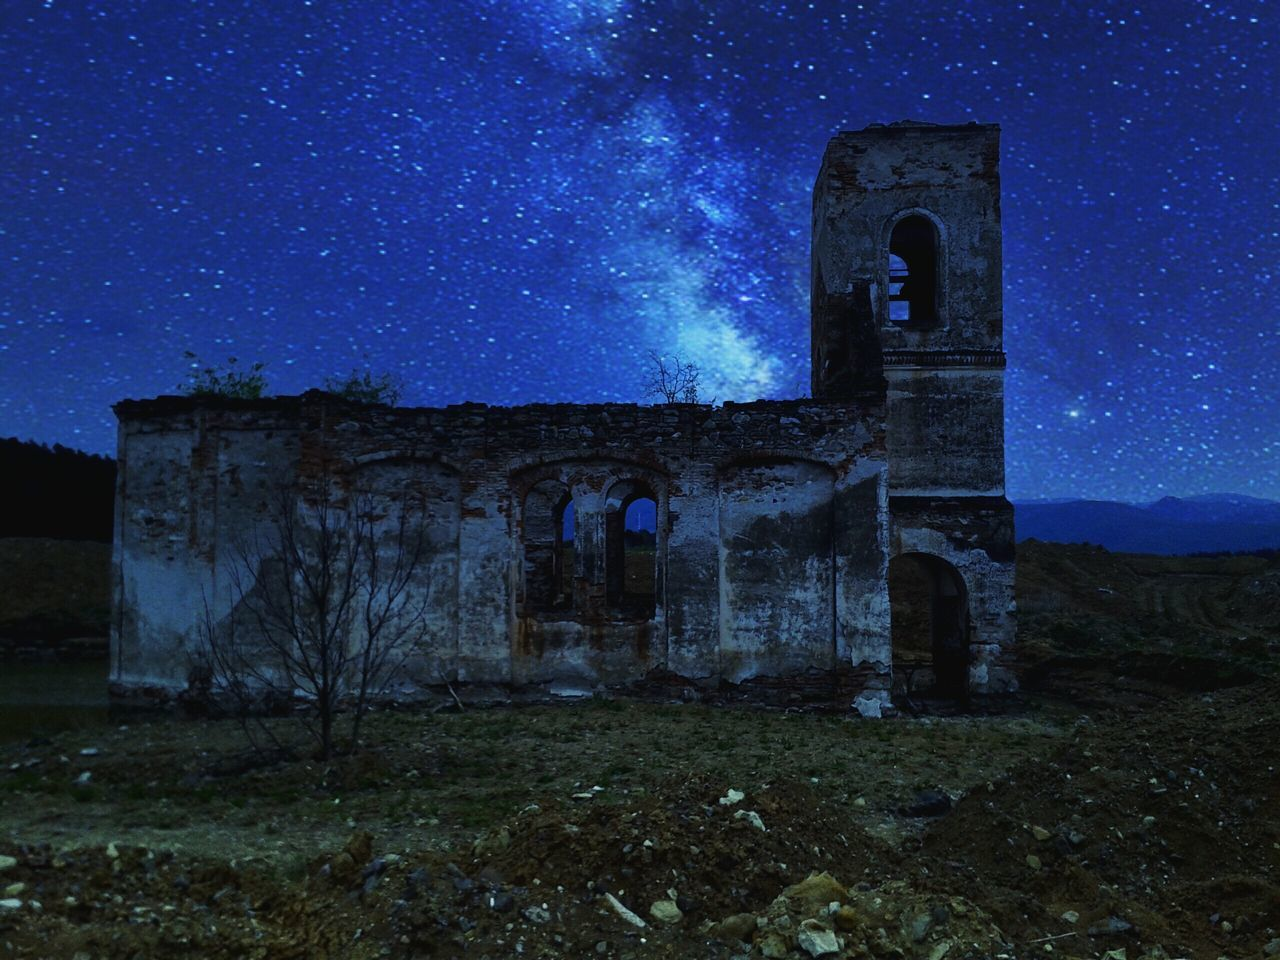 Low Angle View Of Old Church Against Star Blue Field At Night